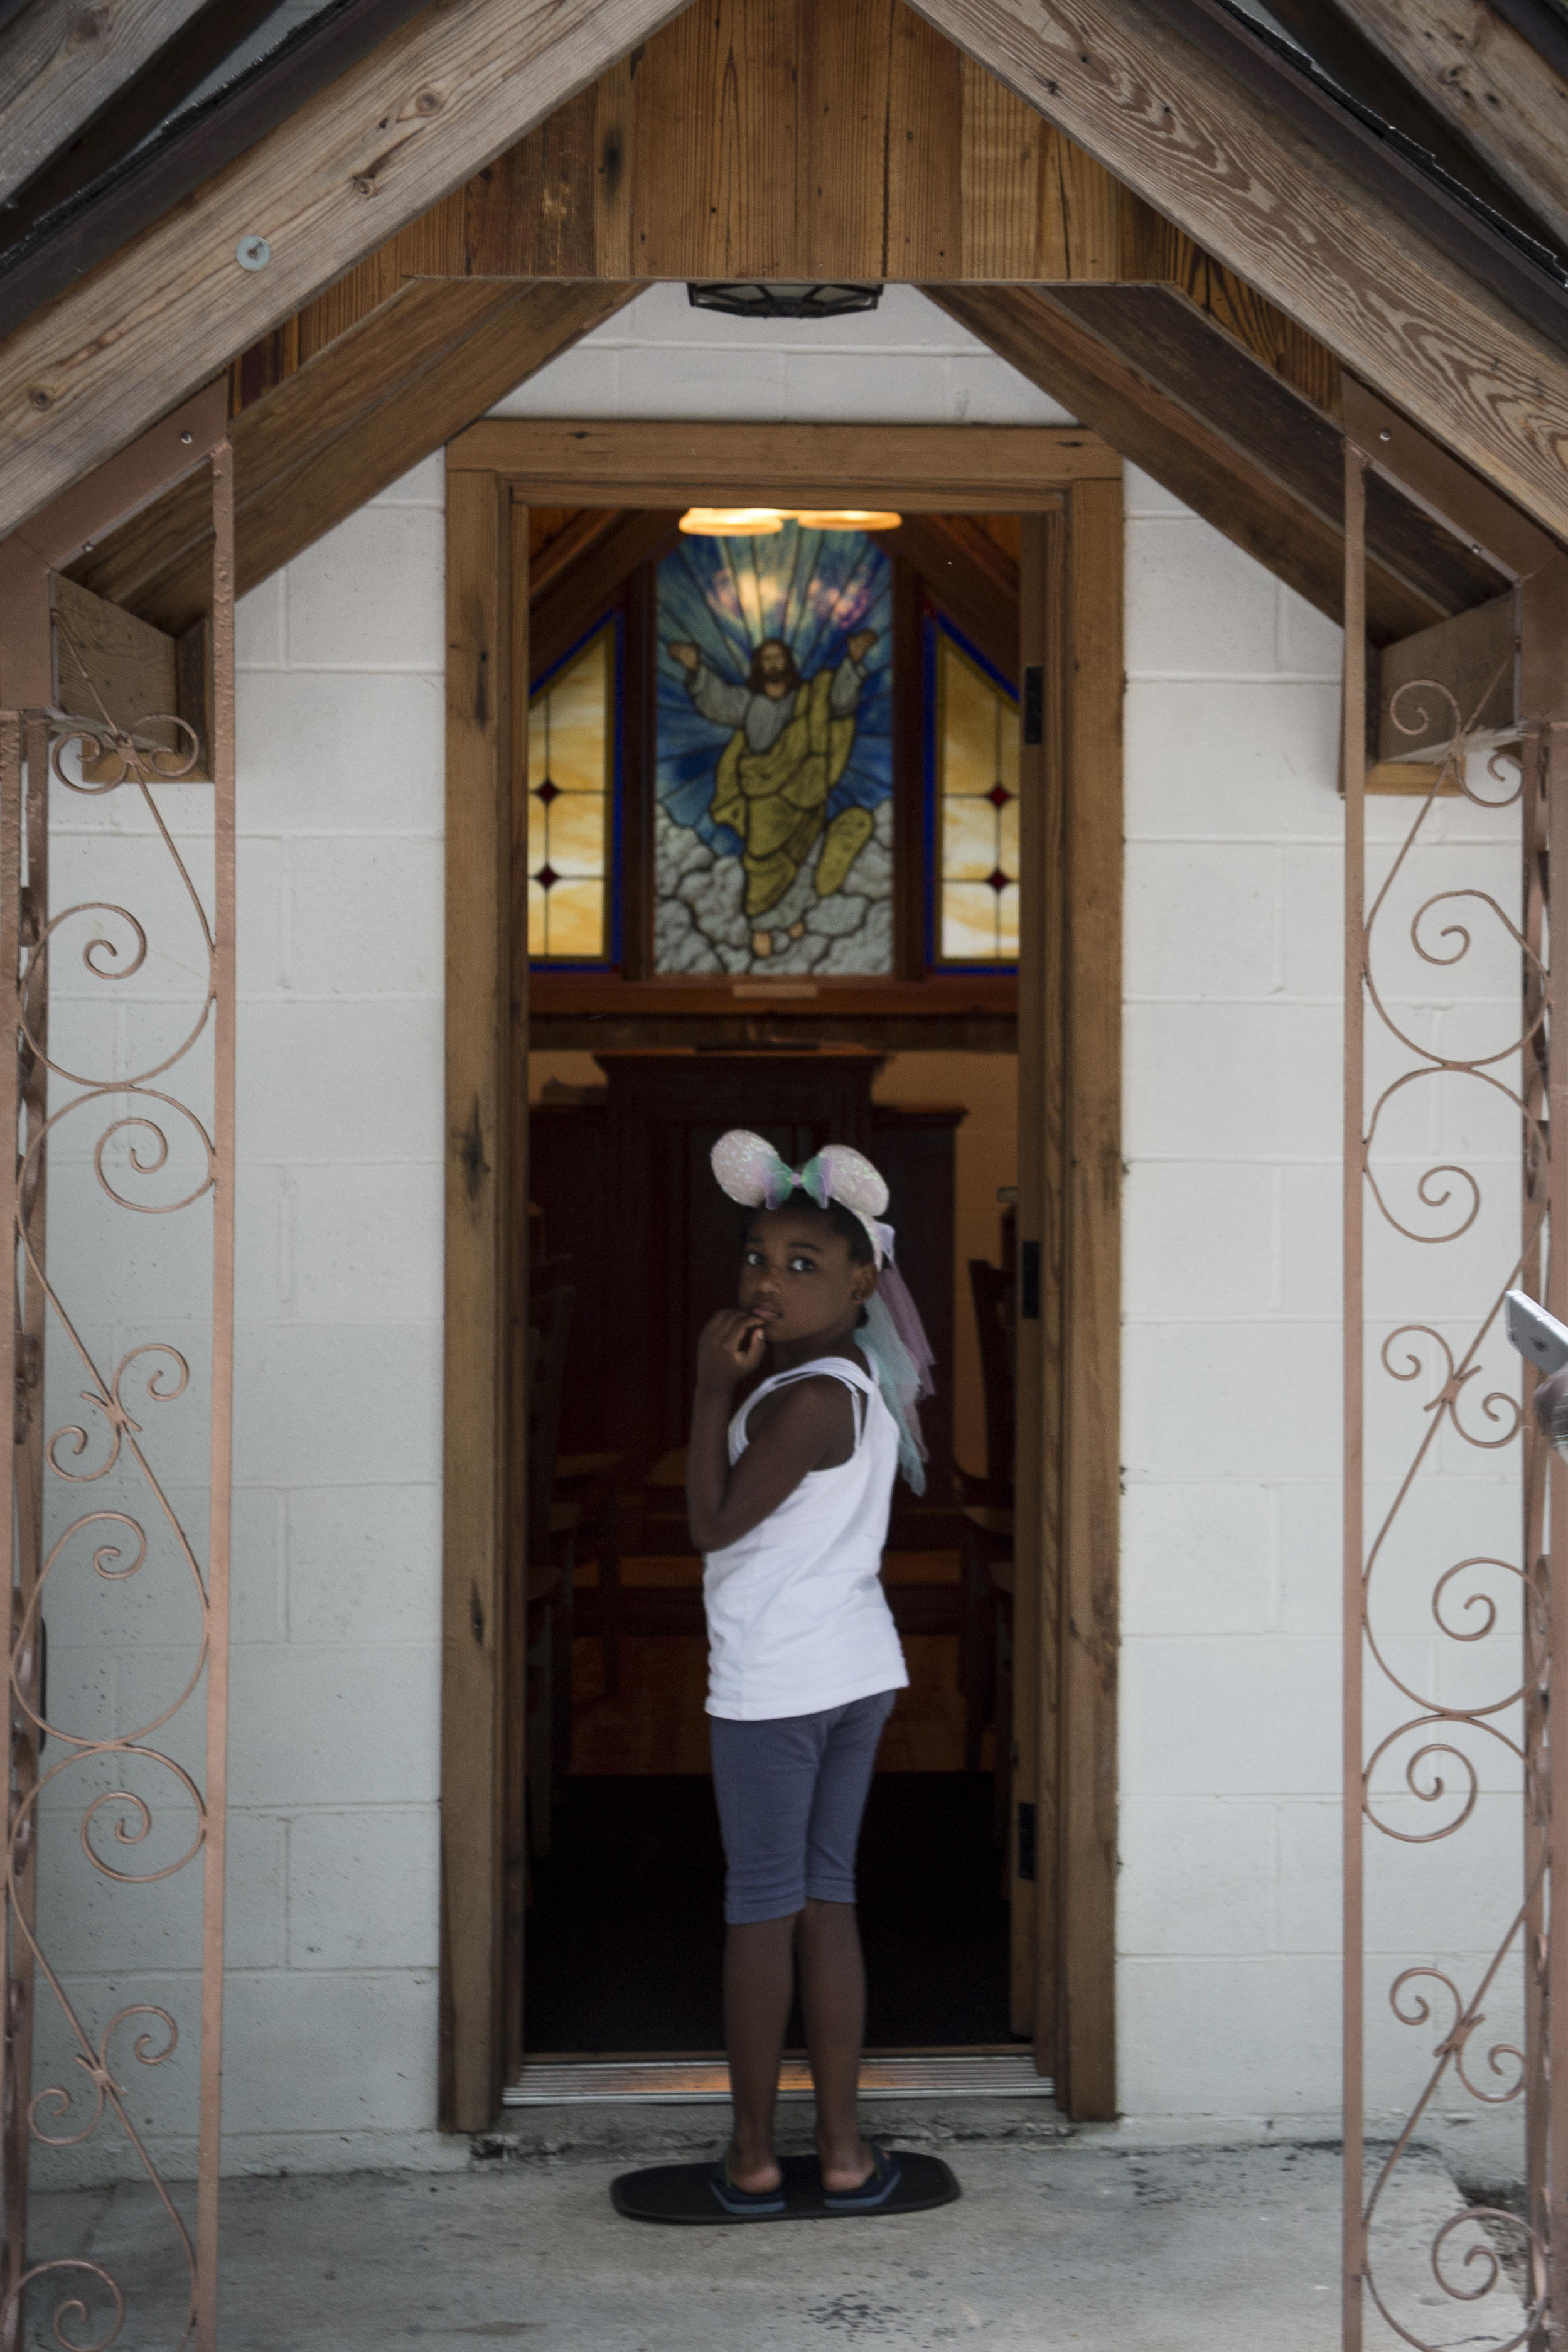 A little girl visiting the church looks back at her father before entering.